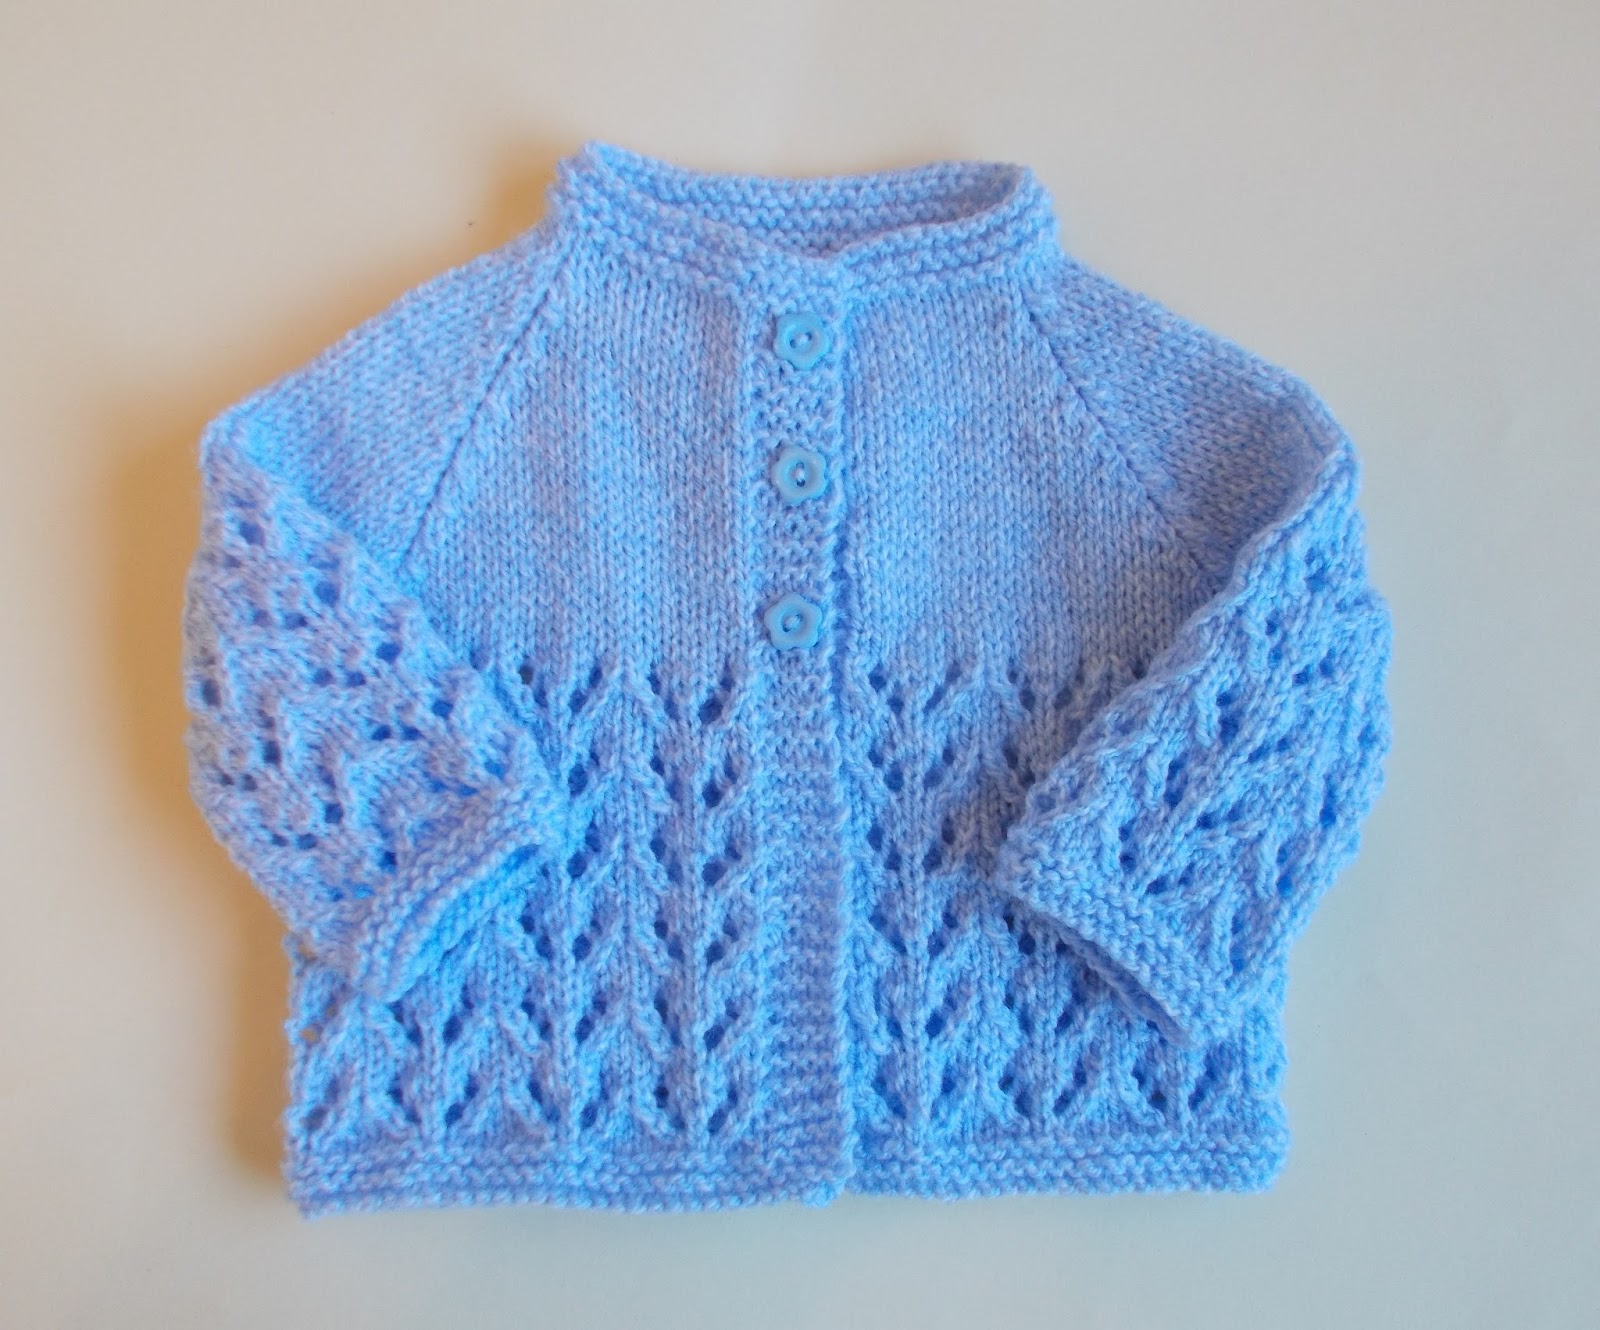 Knitting Pattern Baby Jacket : mariannas lazy daisy days: Bibi Baby Jacket